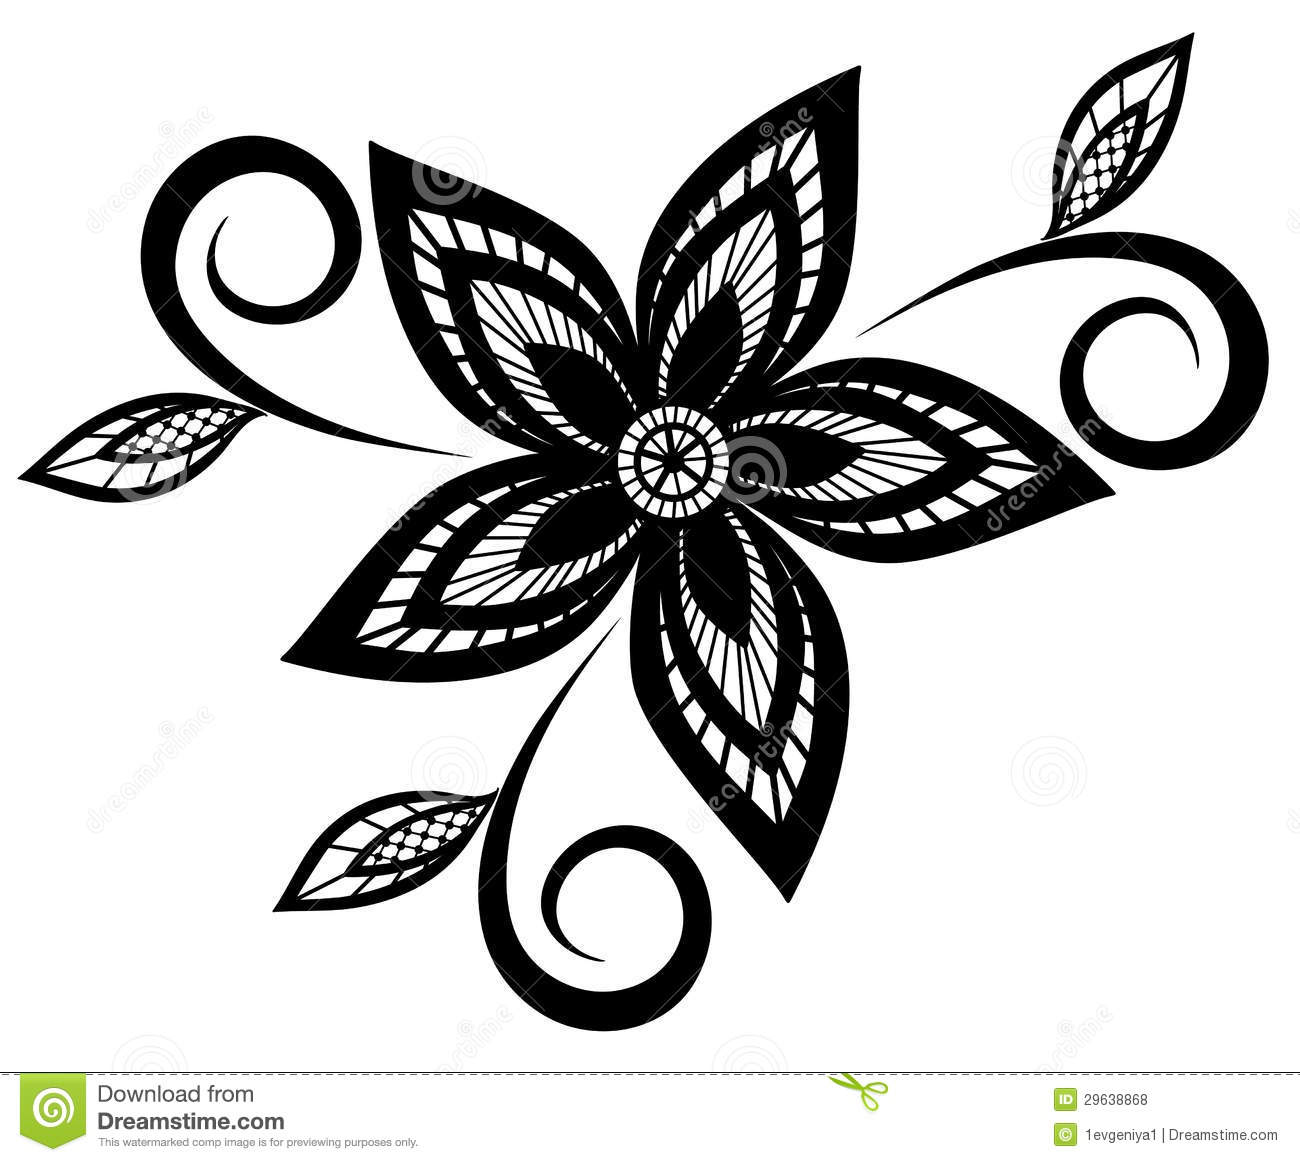 Black Flower And Bud Pattern Royalty Free Stock Photos: Black And White Floral Pattern Design Element. Stock